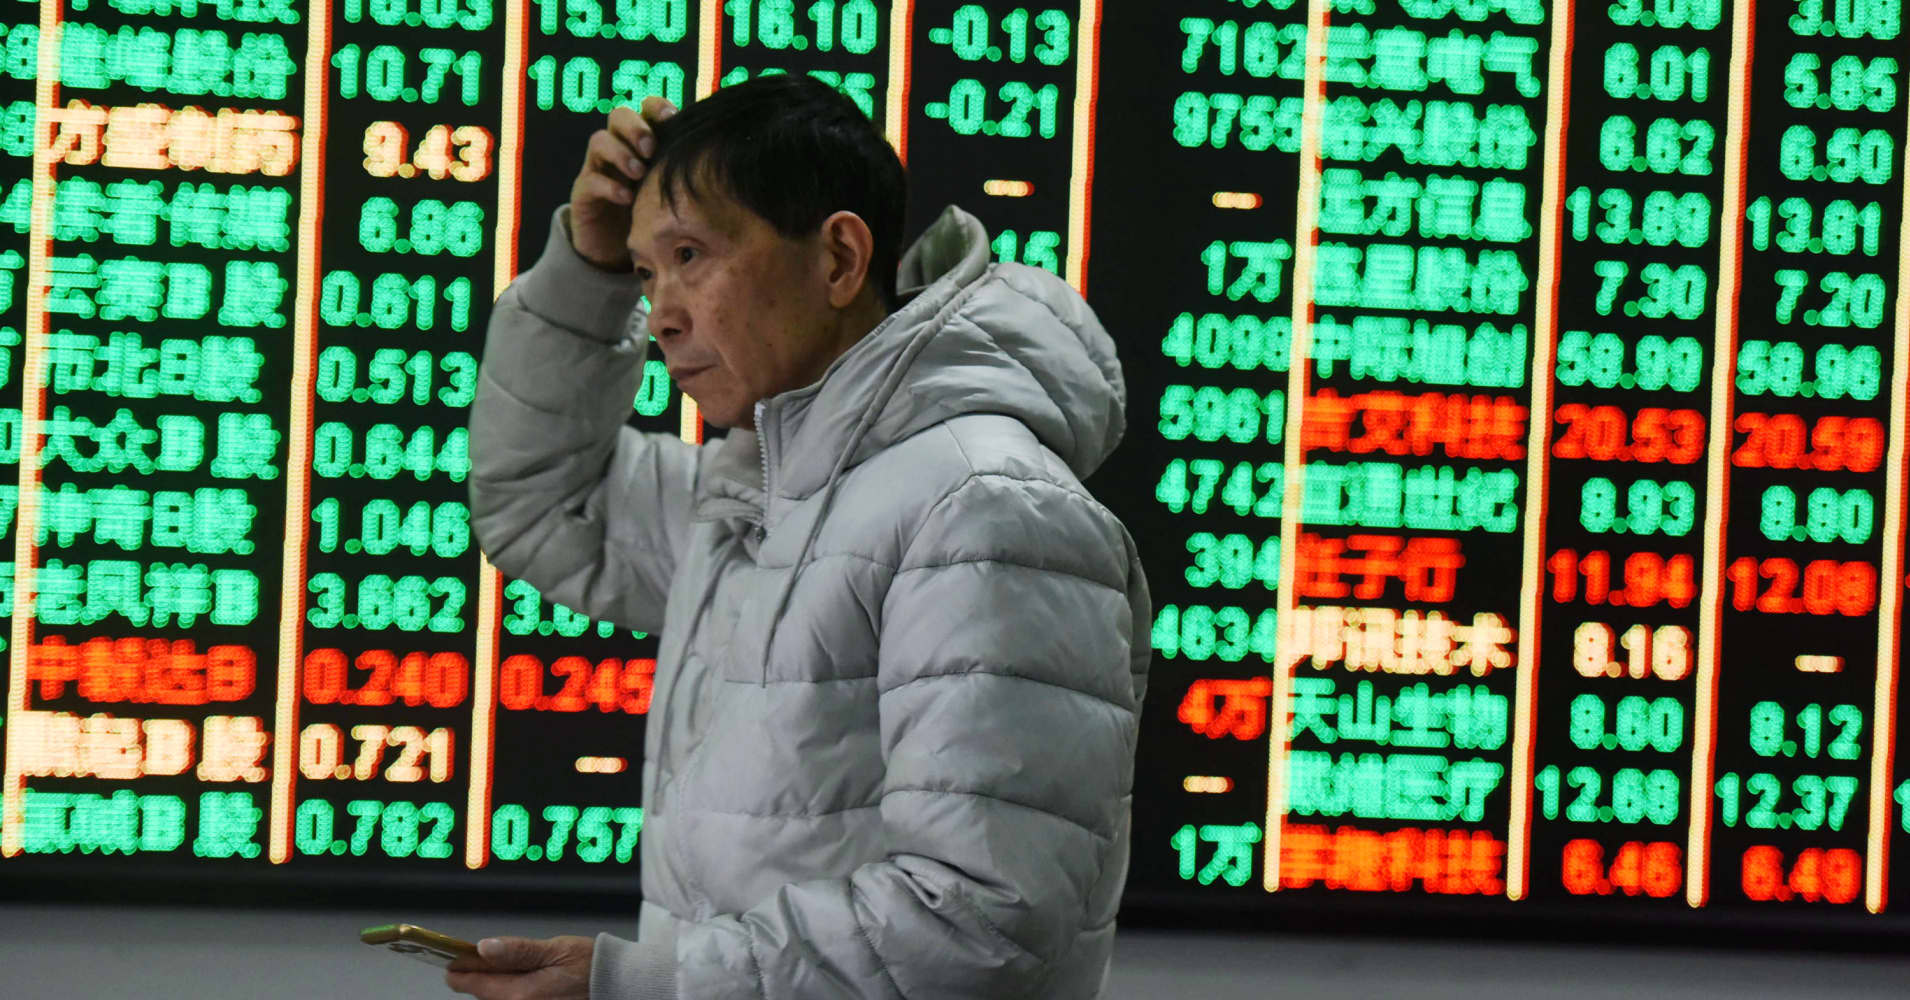 An investor watches the electronic board at a stock exchange hall in Hangzhou, China.